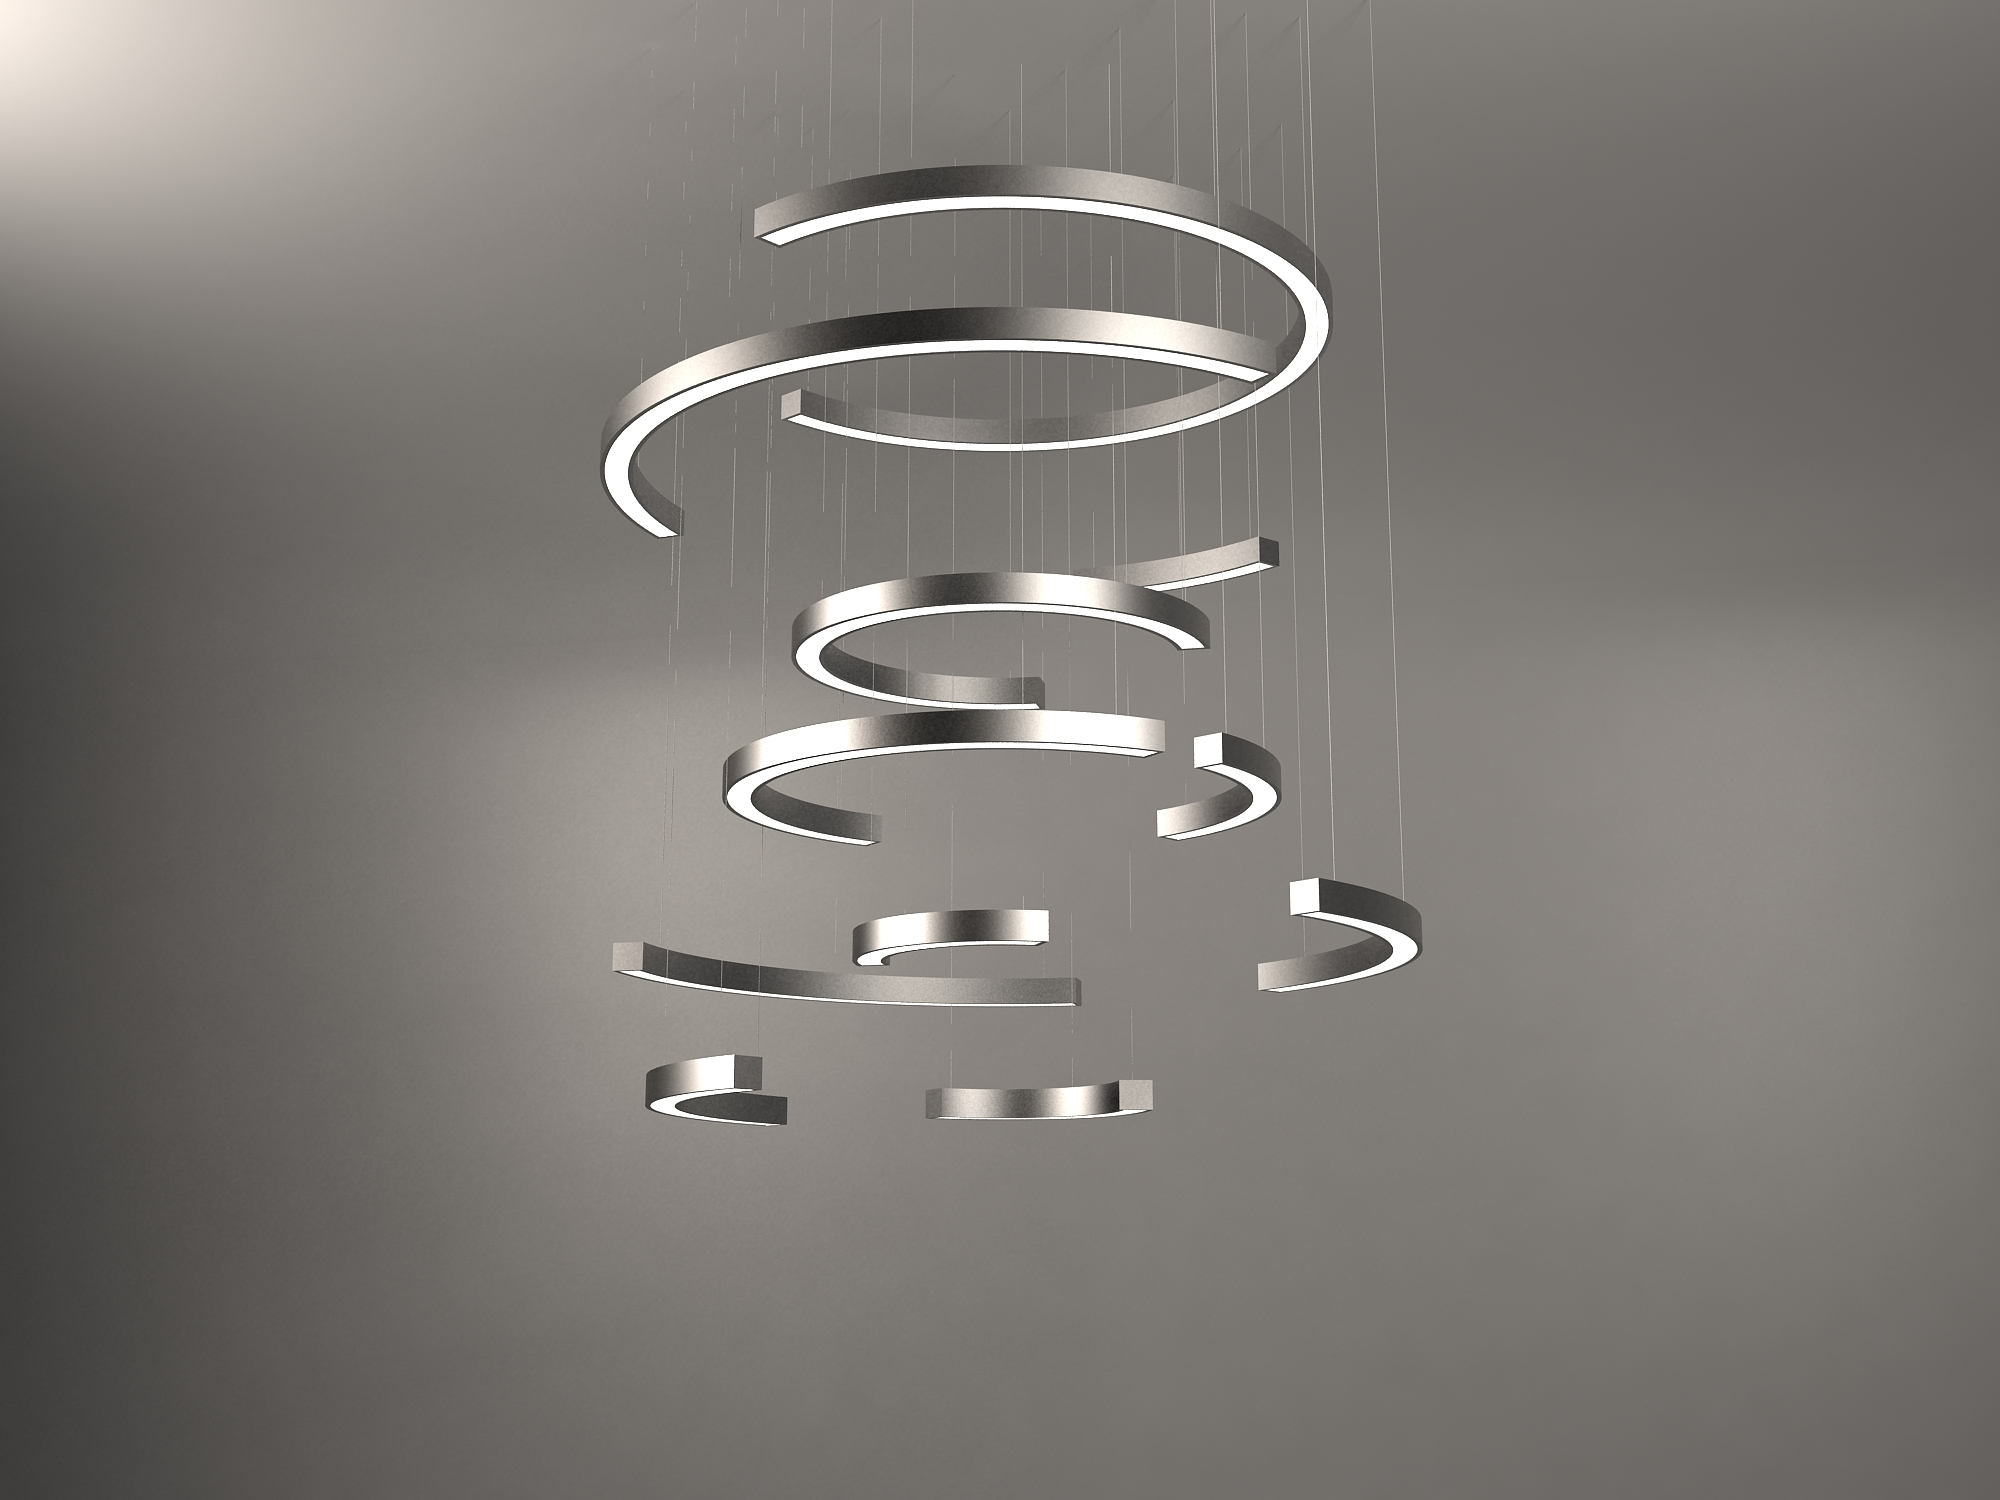 Chandelier with curved fittings_neonny 1